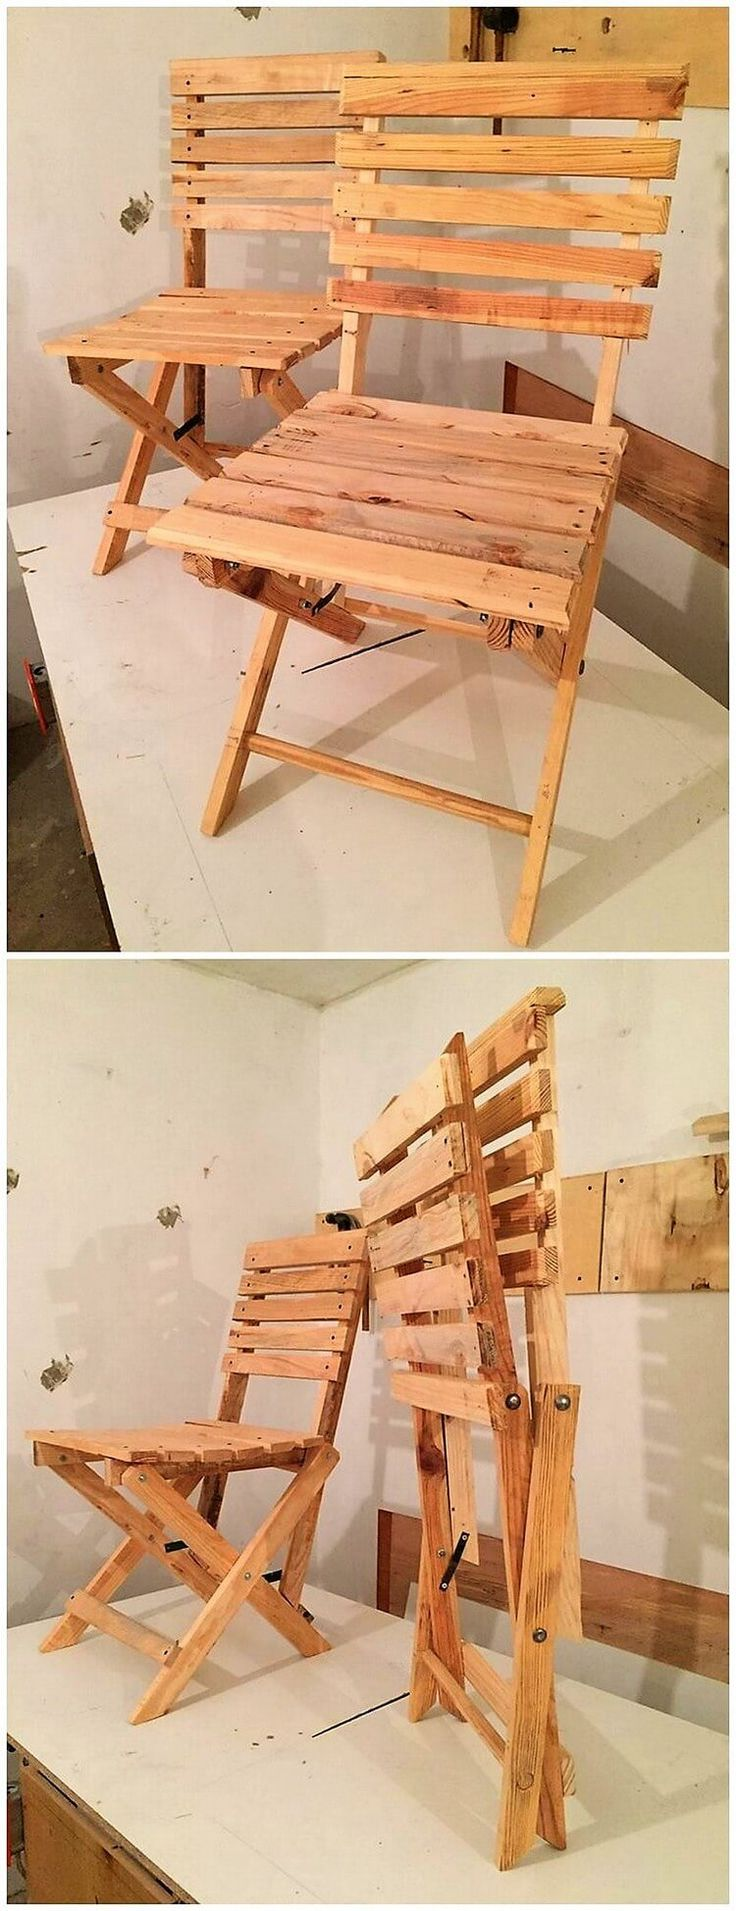 Putting an idea of folding chairs in the house decoration created out of the wood pallet is always a best idea to choose as it makes your task easy enough to move it from one place to another. This idea of the wood pallet folding chairs will turn out to be so impressive looking.